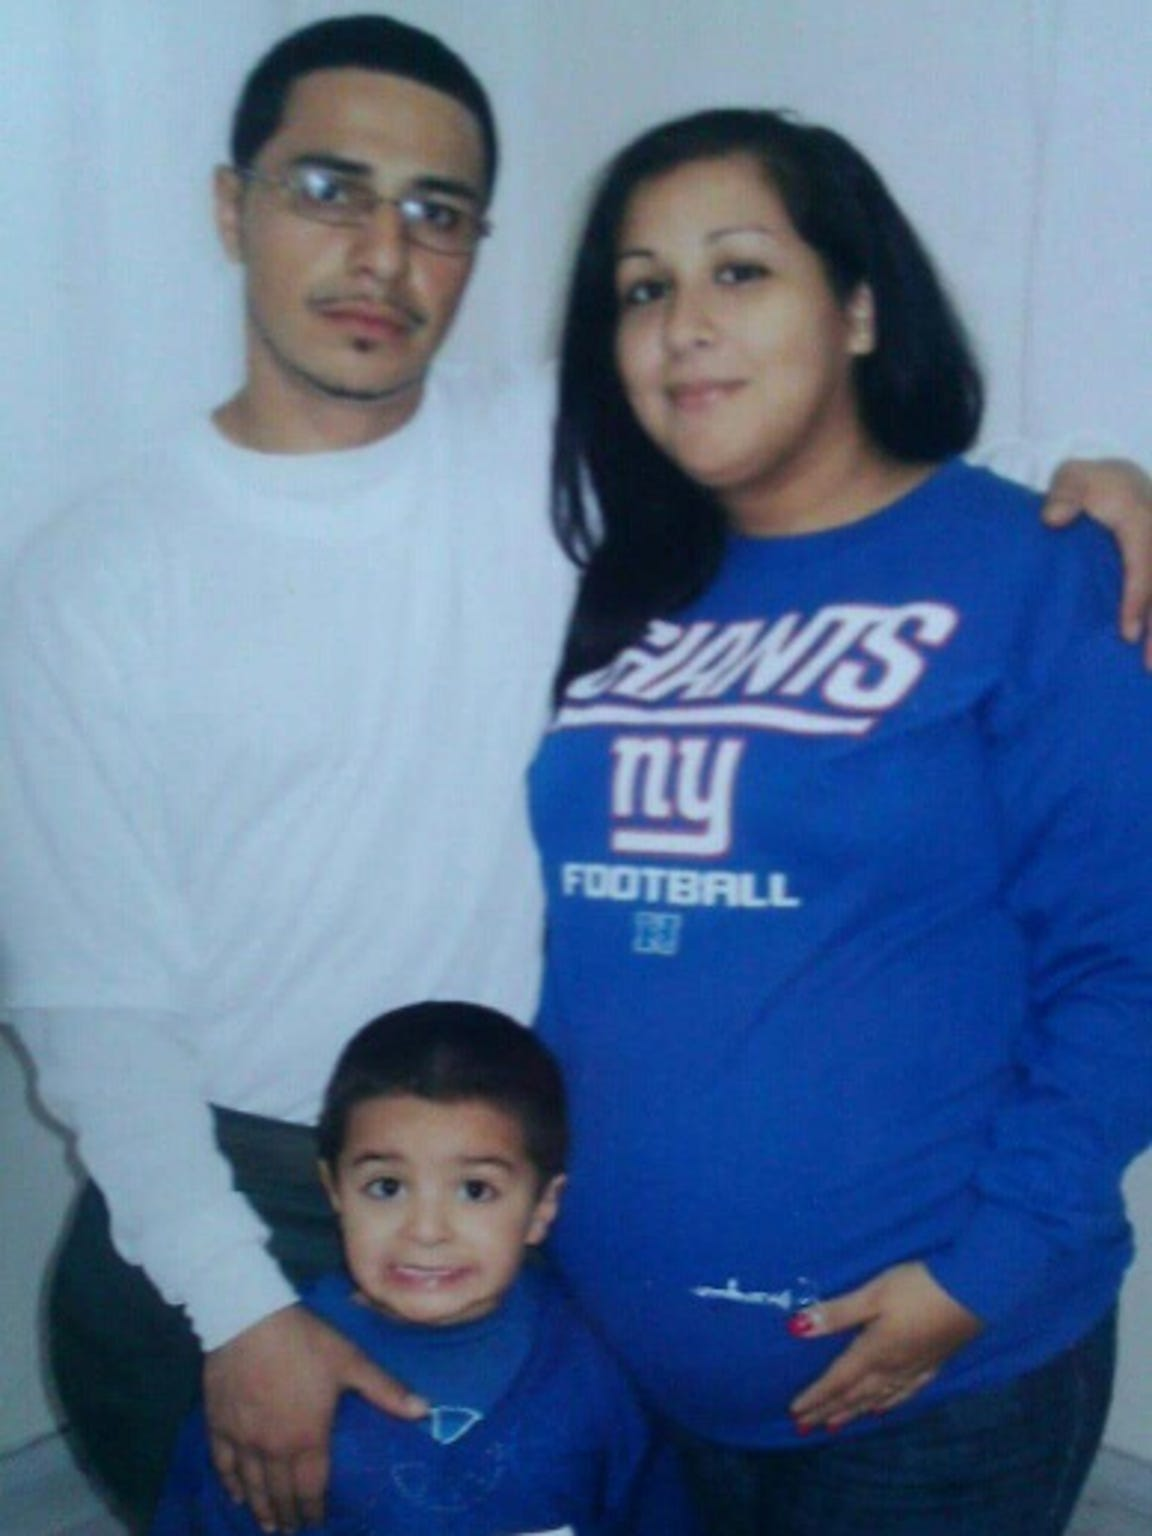 Norman Velez and his family show their Big Blue pride.